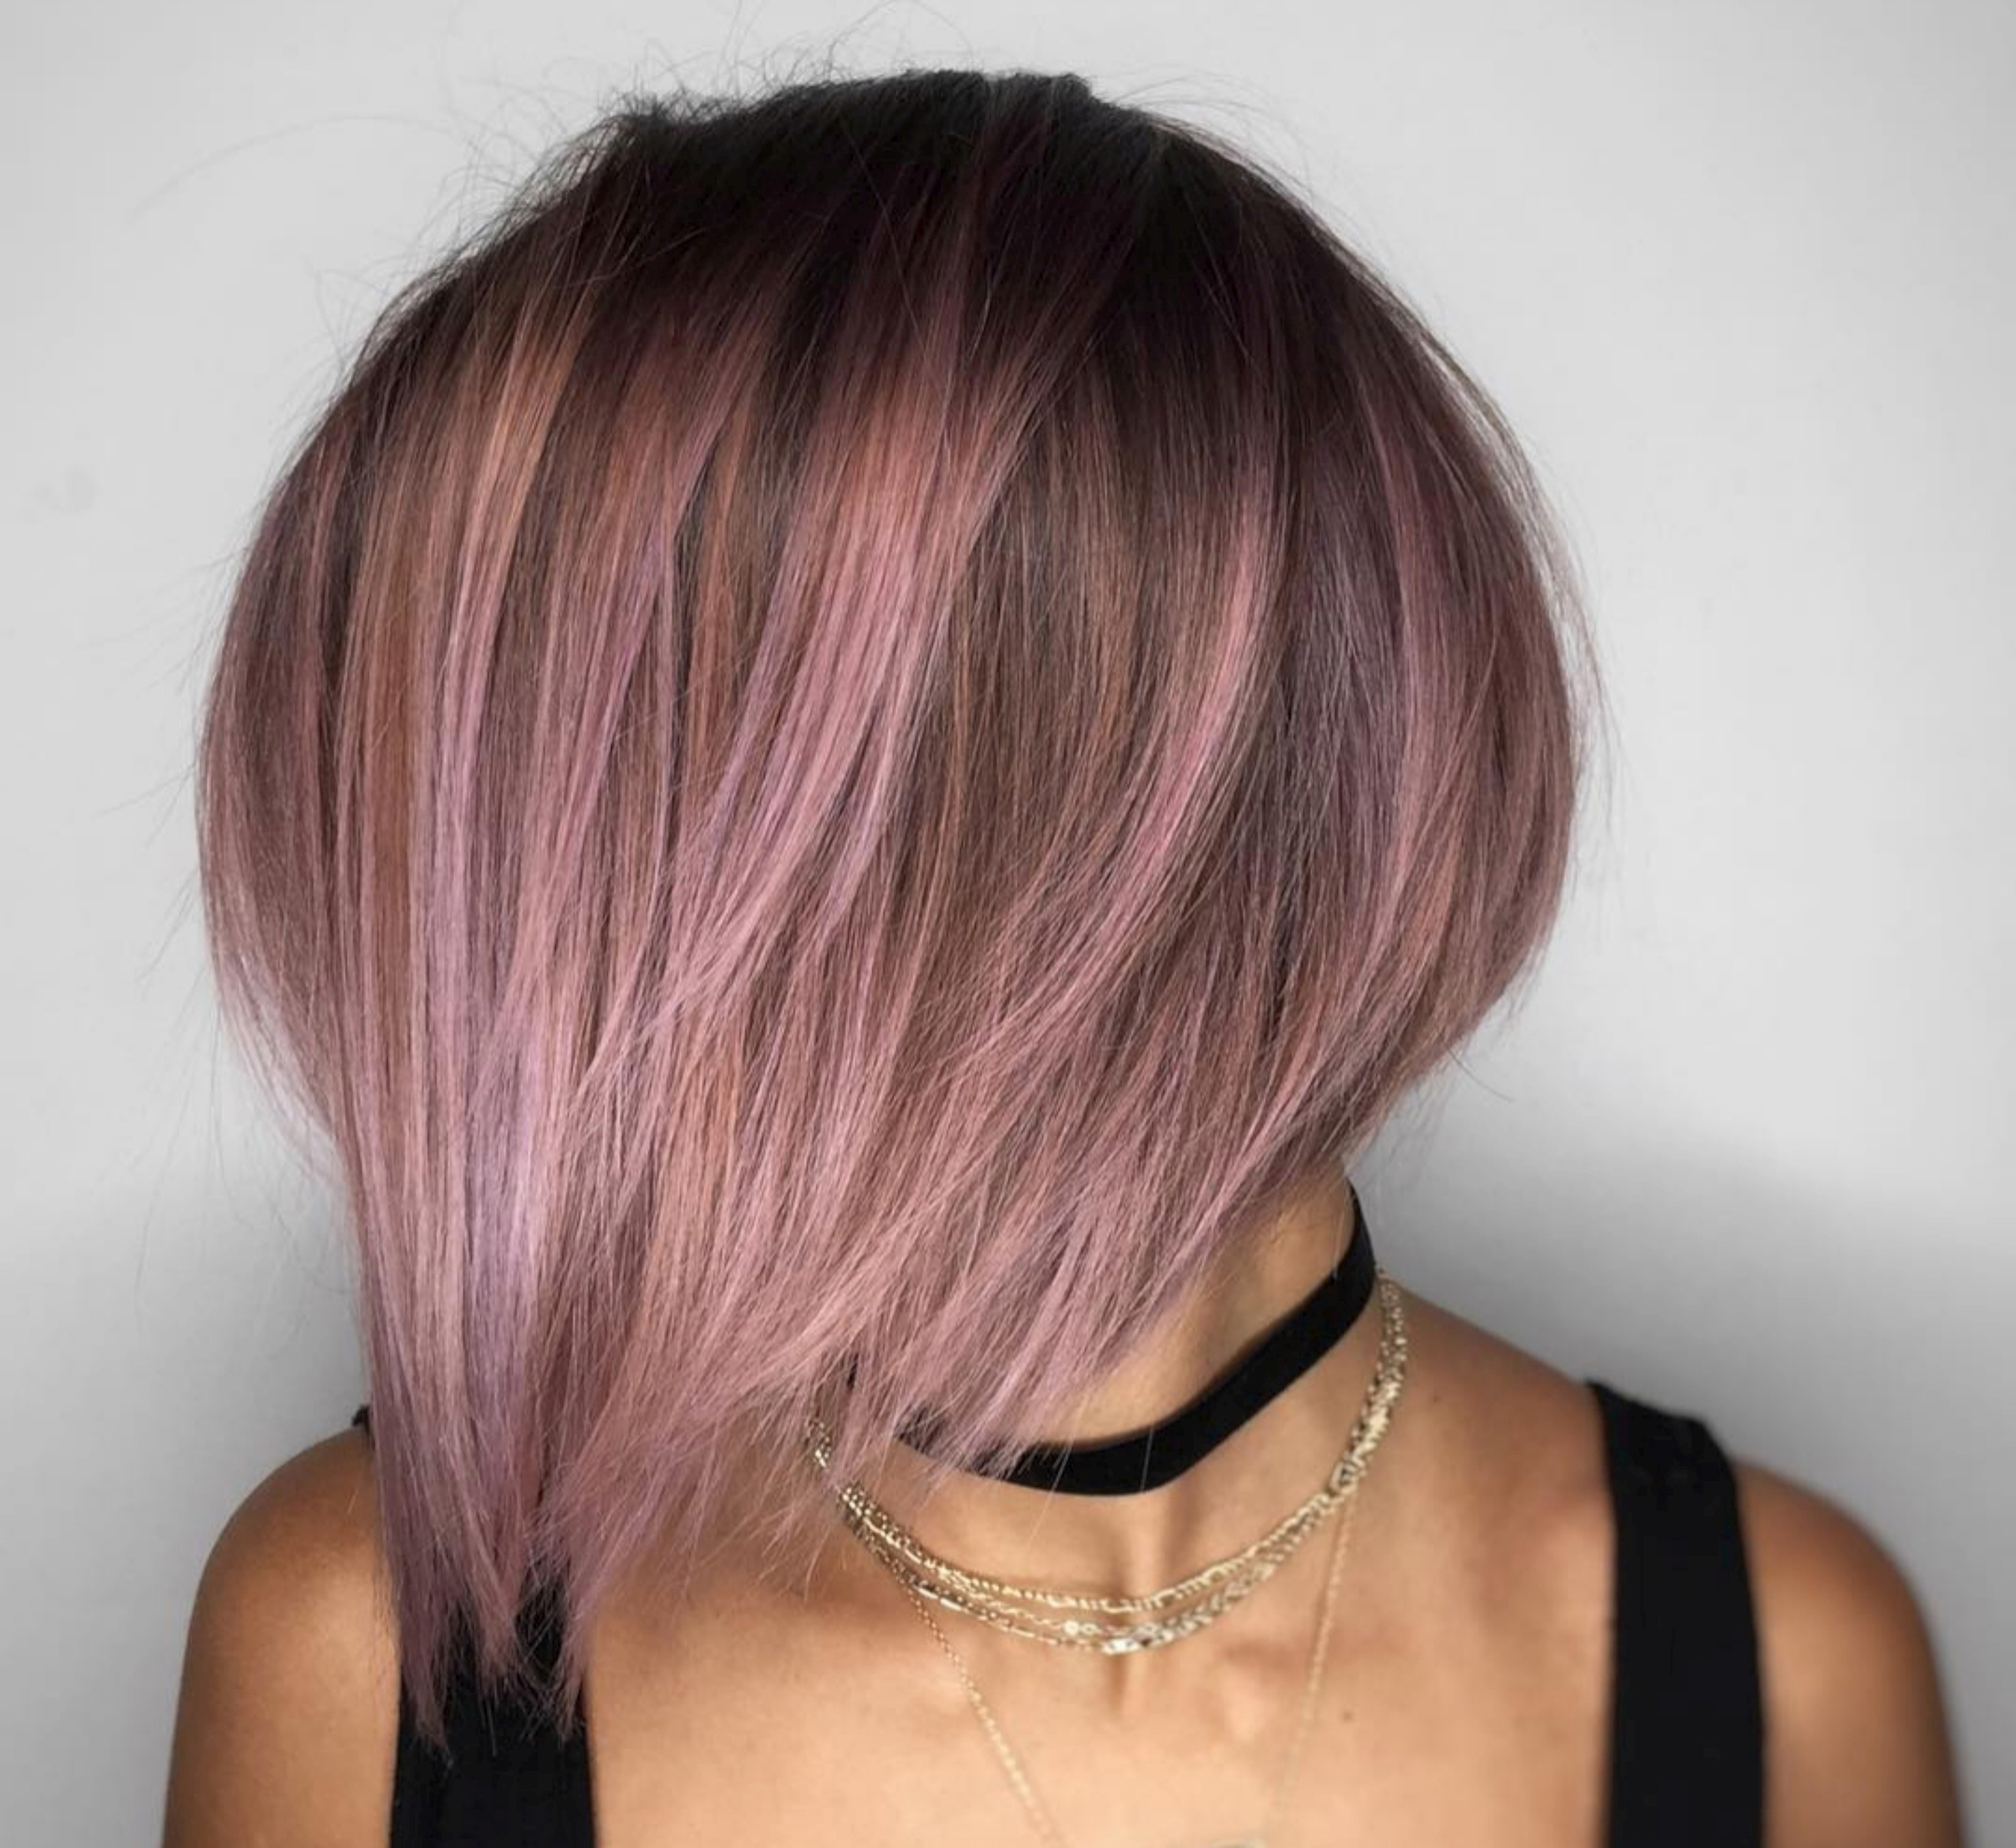 Smokey Pink Color Short Hair Style Wallpaper – Cr Wallpaper Pertaining To Pinks Short Haircuts (View 20 of 25)